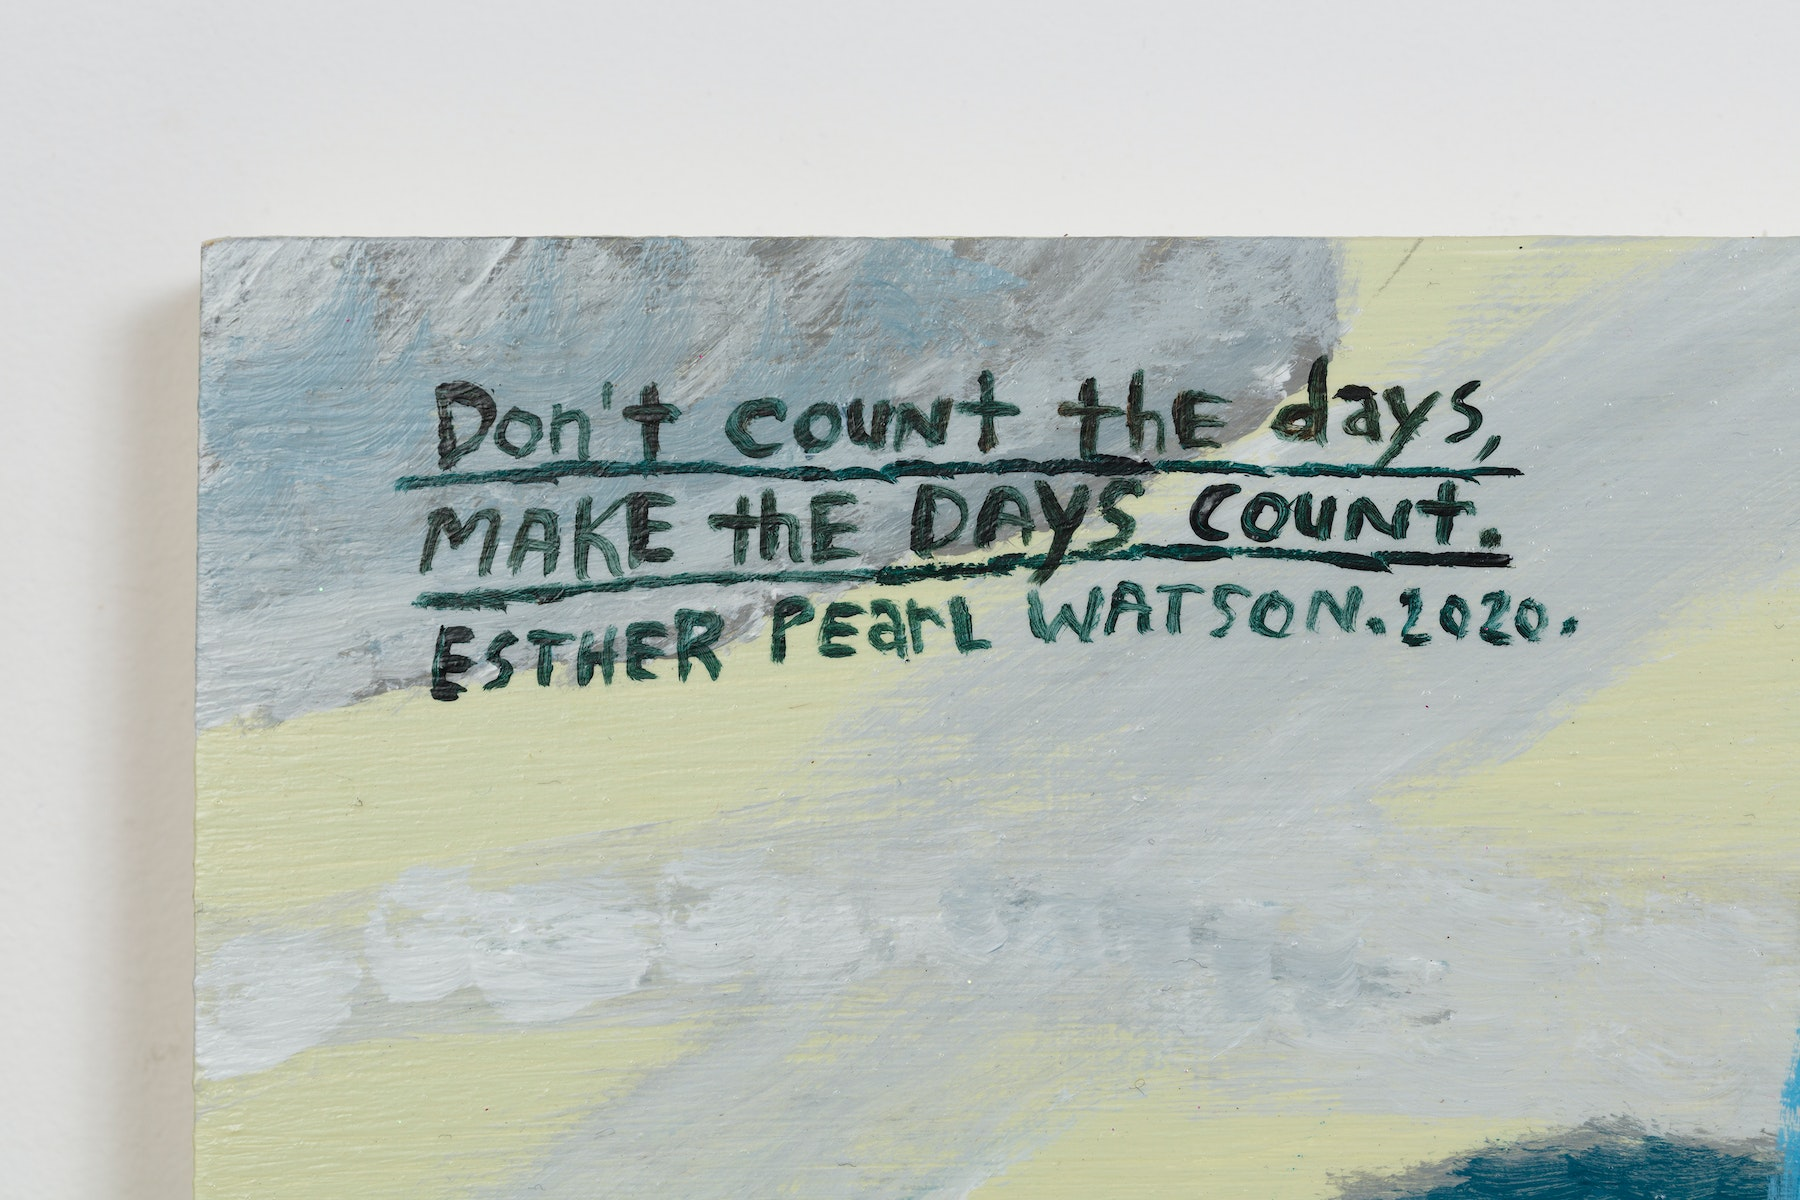 """Esther Pearl Watson """"Don't count the days, Make the days count,"""" 2020 Acrylic, foil, foil paper, found mirror, graphite on panel 12 x 16"""" [HxW] (30.48 x 40.64 cm) Inventory #EPW223 Courtesy of the artist and Vielmetter Los Angeles Photo credit: Jeff McLane"""